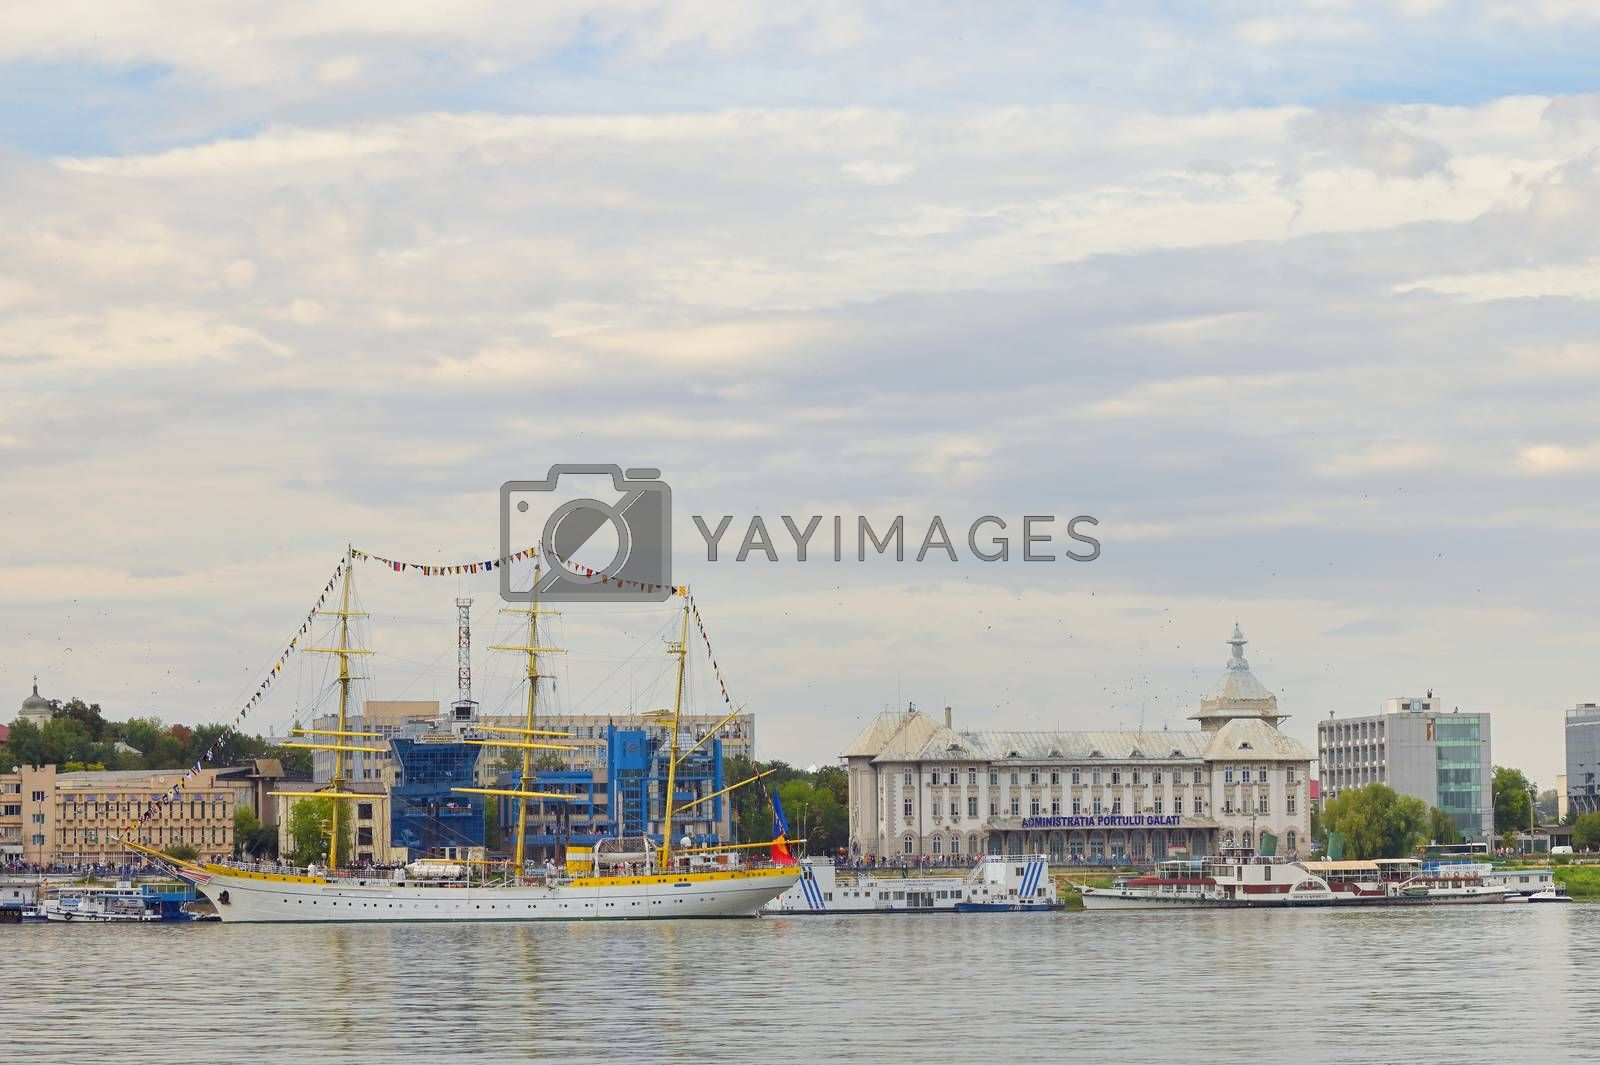 Galati, Romania - September 17, 2019. Brice Mircea Romanian Military Navy School Ship docked on Danube river in commercial port quay of Galati